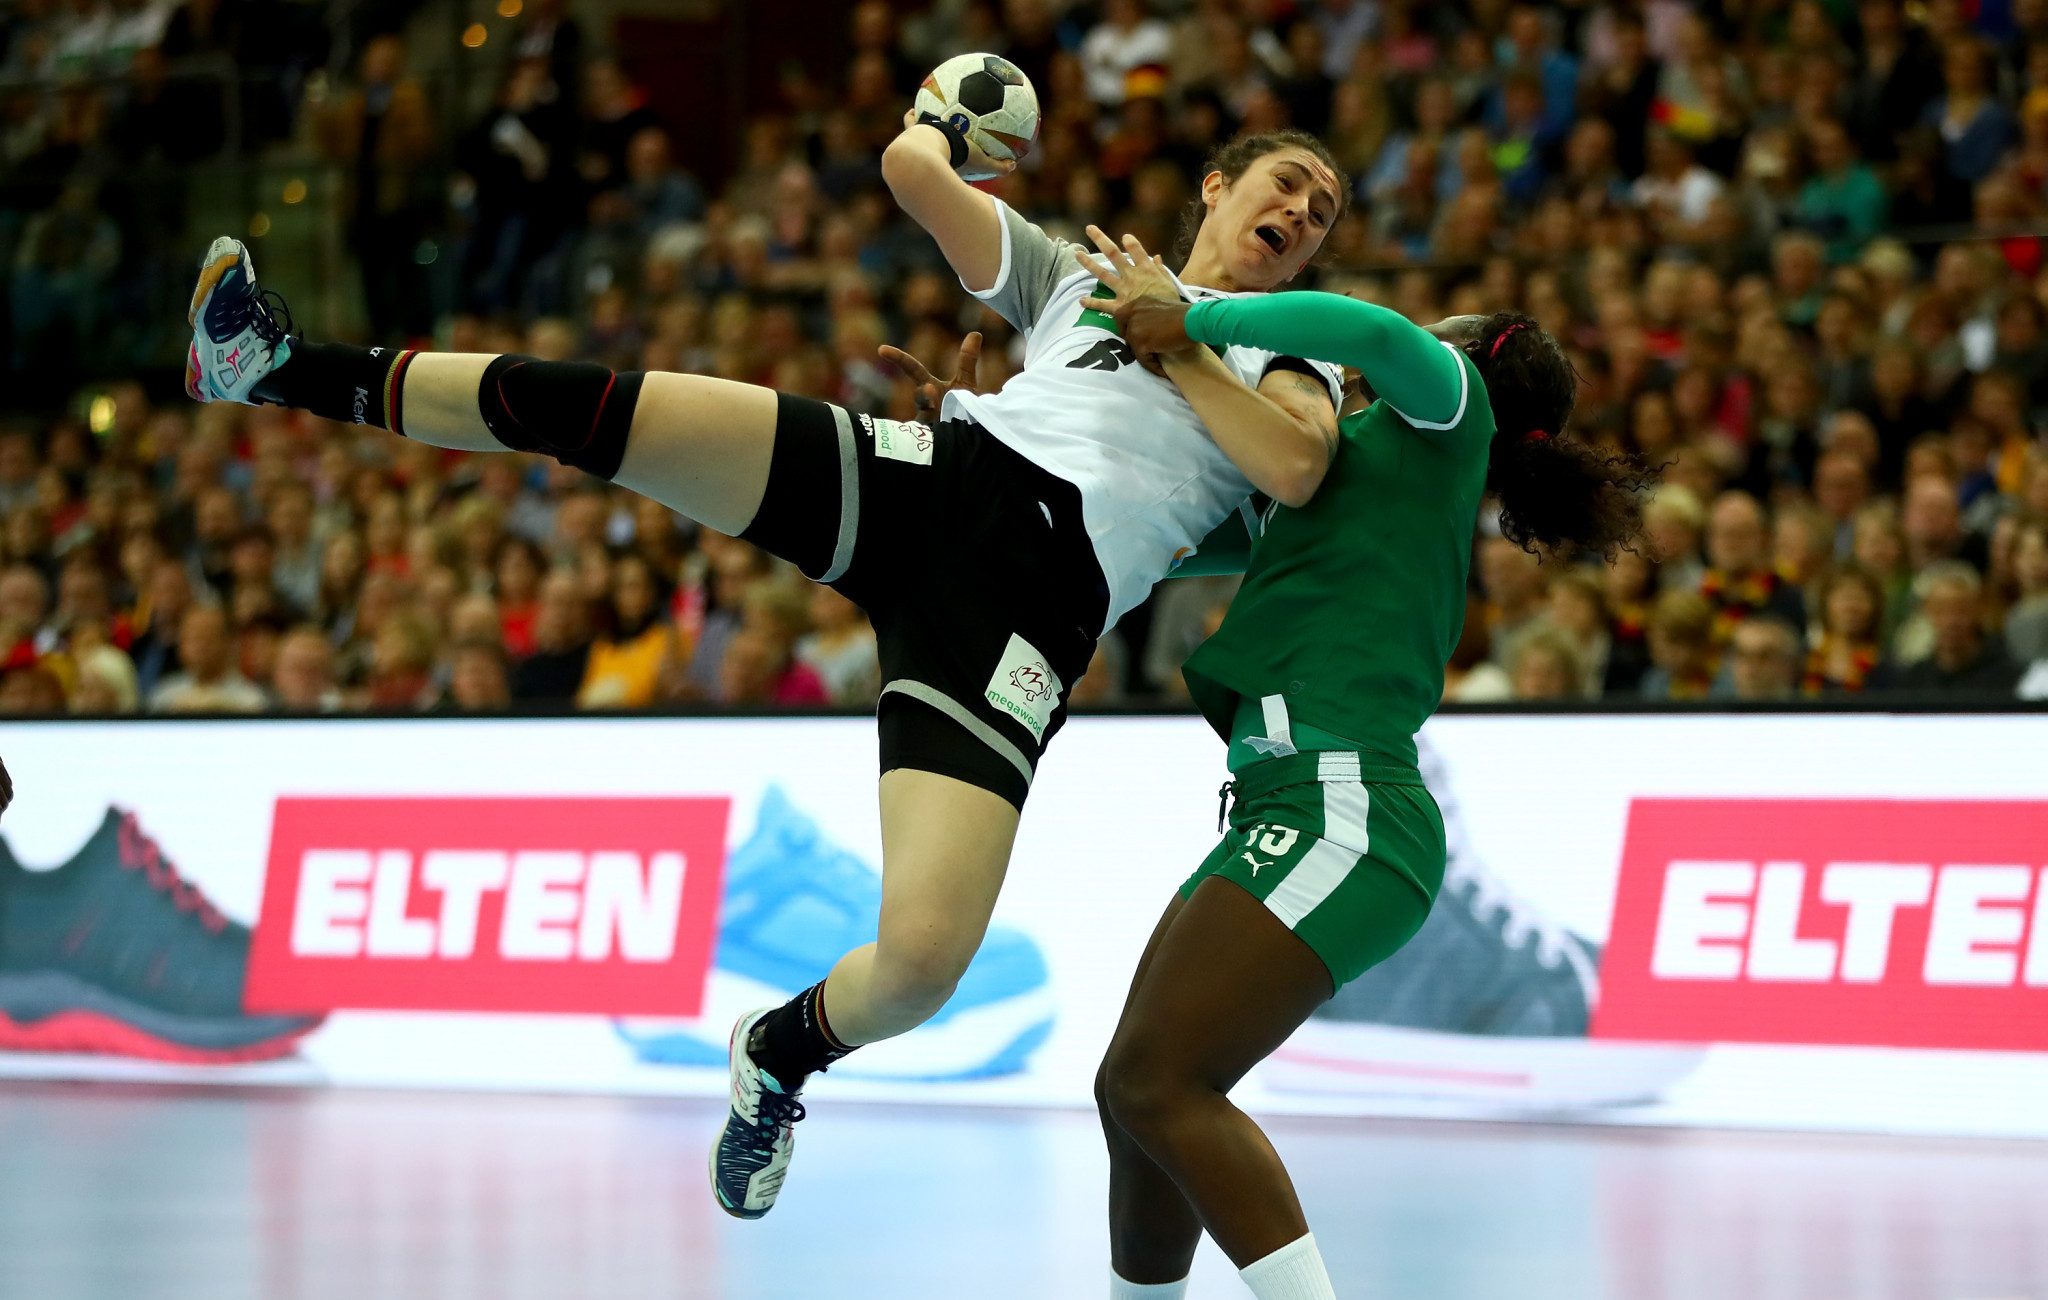 Hosts Germany open with comfortable win over Cameroon at Women's Handball World Championship